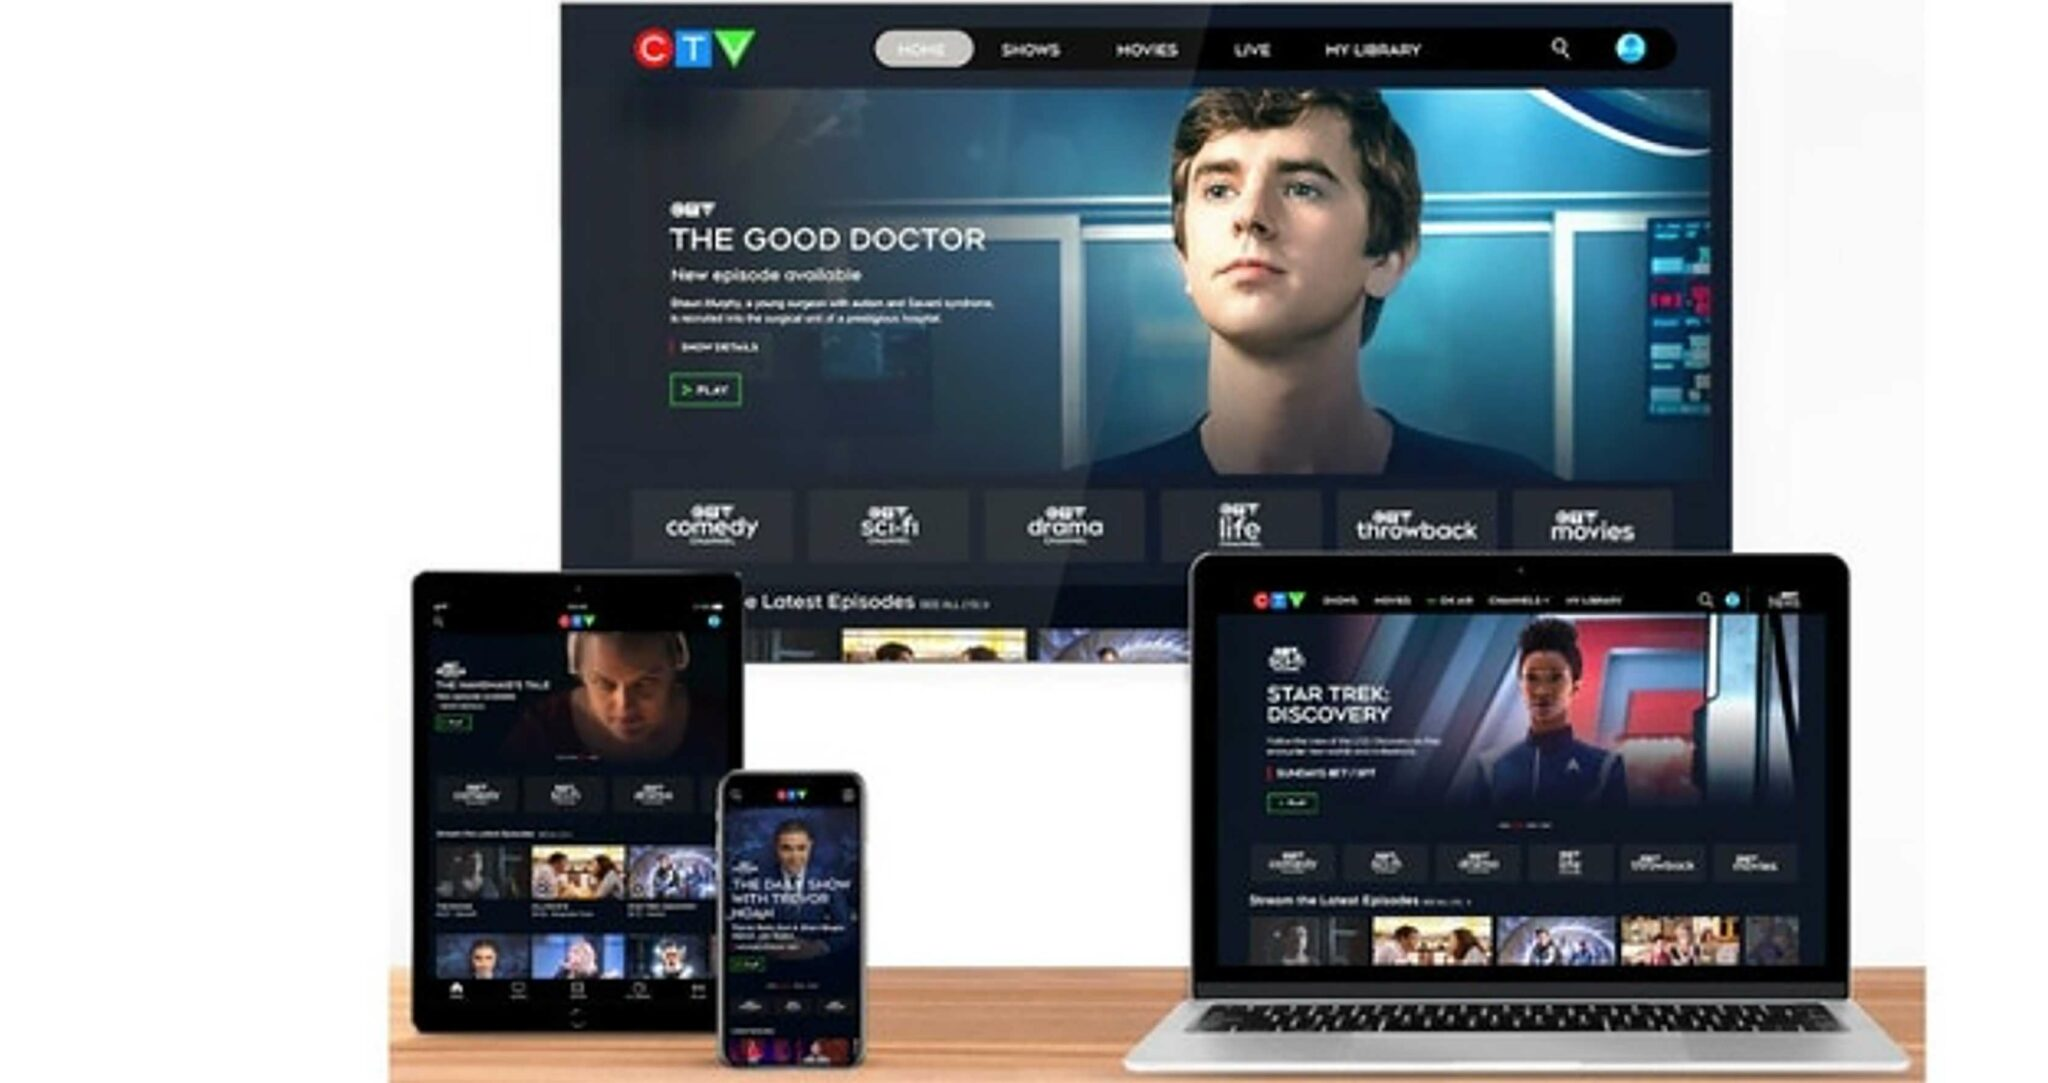 Bell launches all-in-one digital platform for CTV content